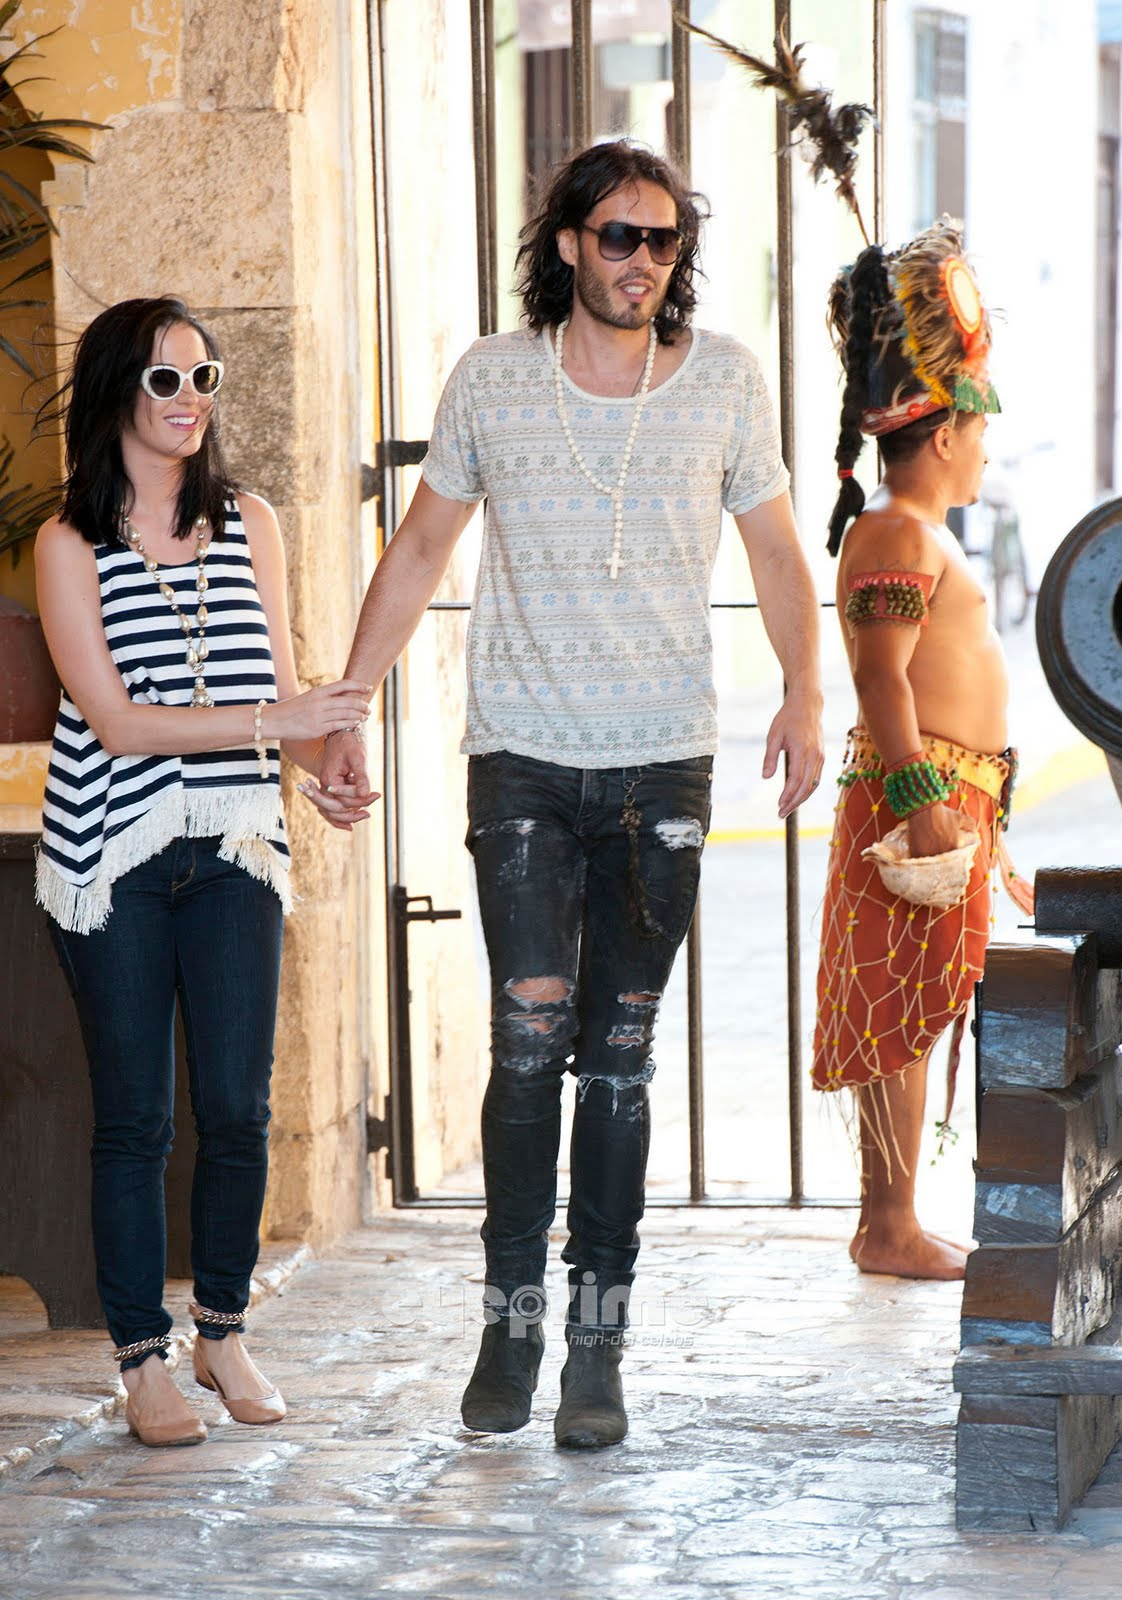 http://2.bp.blogspot.com/-QAeFv4zuTEs/TehB9oVqNjI/AAAAAAAACR8/AWWhQV3GzRk/s1600/Katy-Perry-Russell-Brand-Spend-Memorial-Day-in-Campeche-Mexico-May-29-katy-perry-22518547-1402-2000.jpg